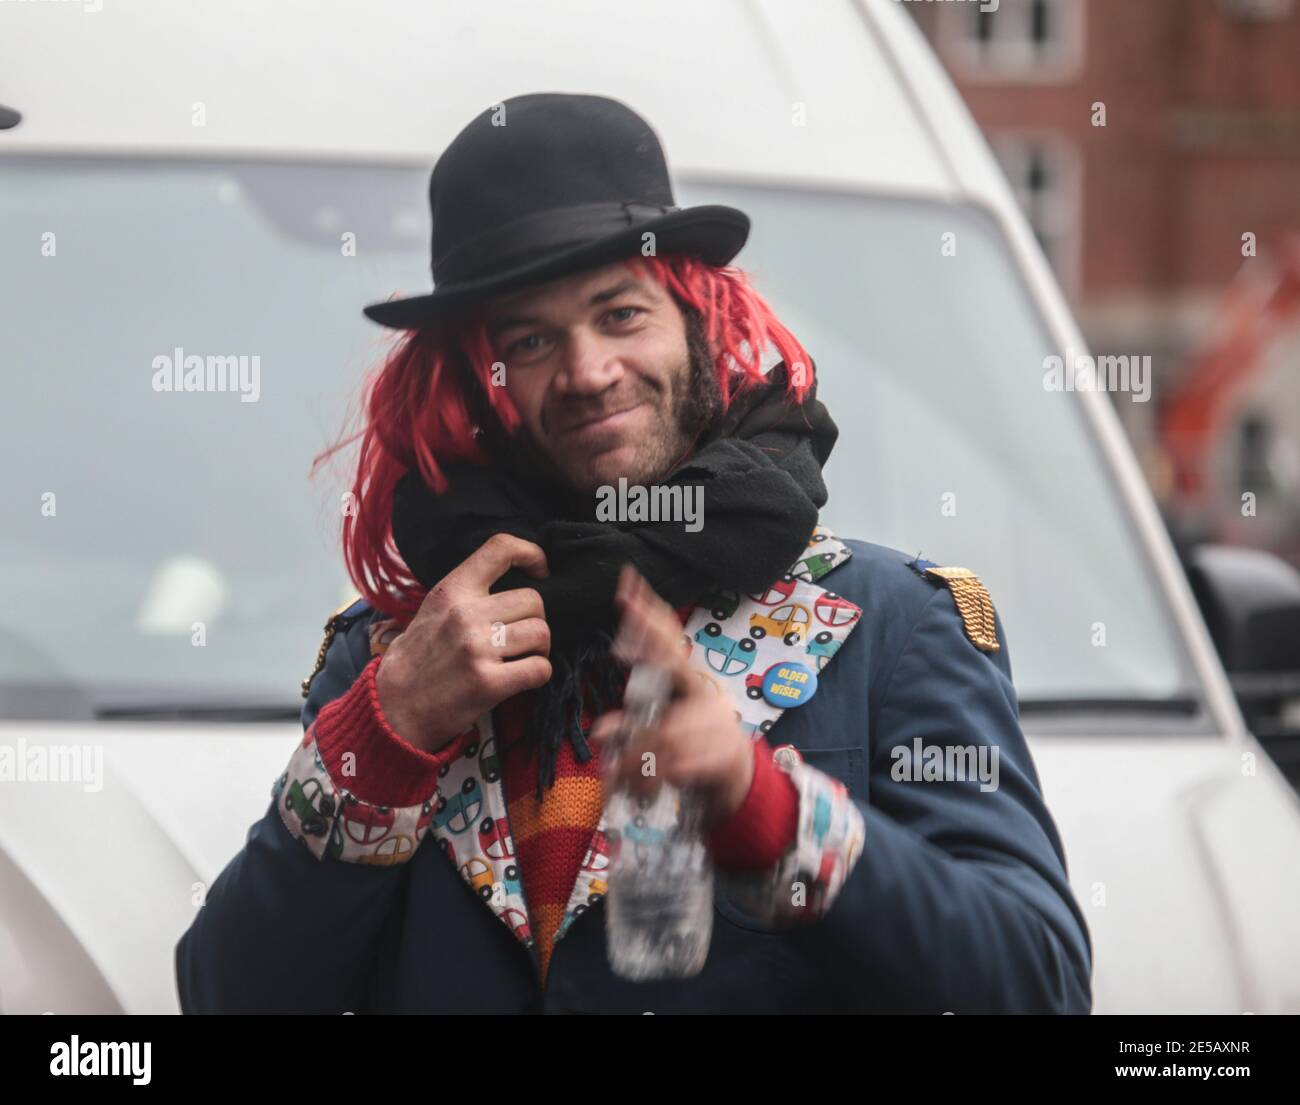 London UK 27 January 2021  Daniel Hooper better know as Swampy at todays ecition site in Euston Square ,were security moved acitivts after was known they were digging a tummel in the square.Paul Quezada-Neiman/Alamy Live News Stock Photo